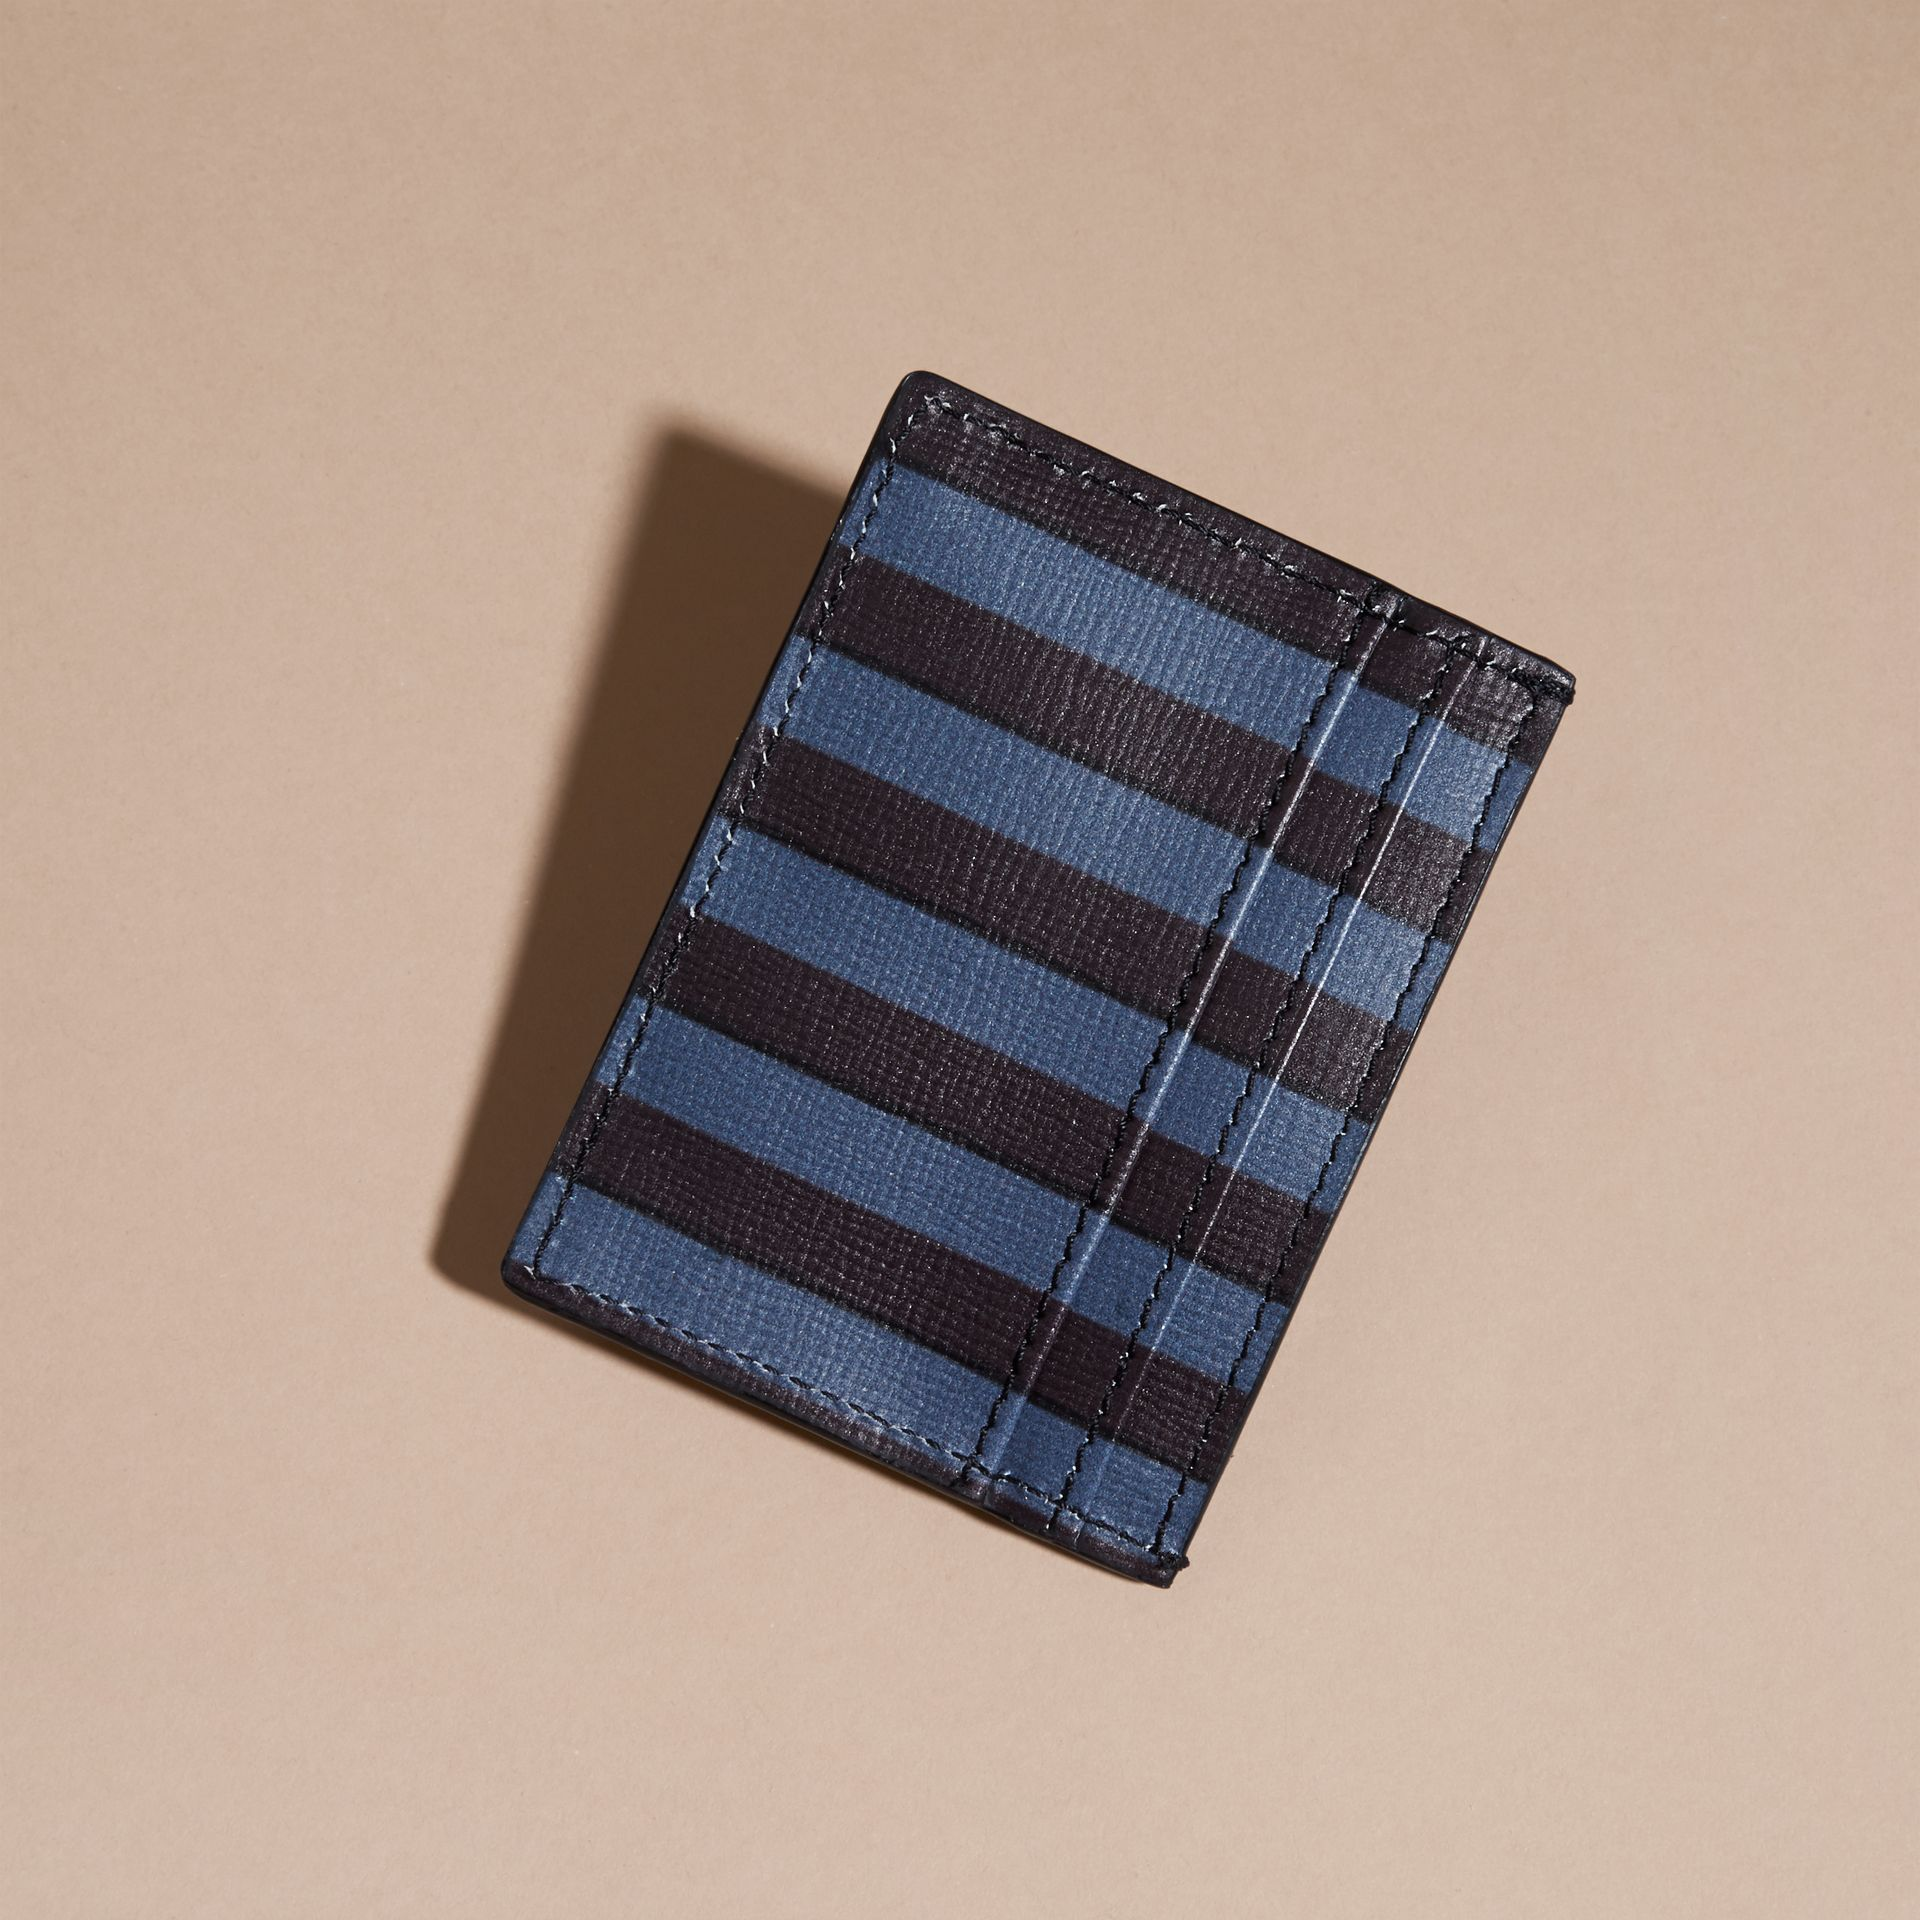 Pyjama Stripe London Leather Card Case Navy - gallery image 4